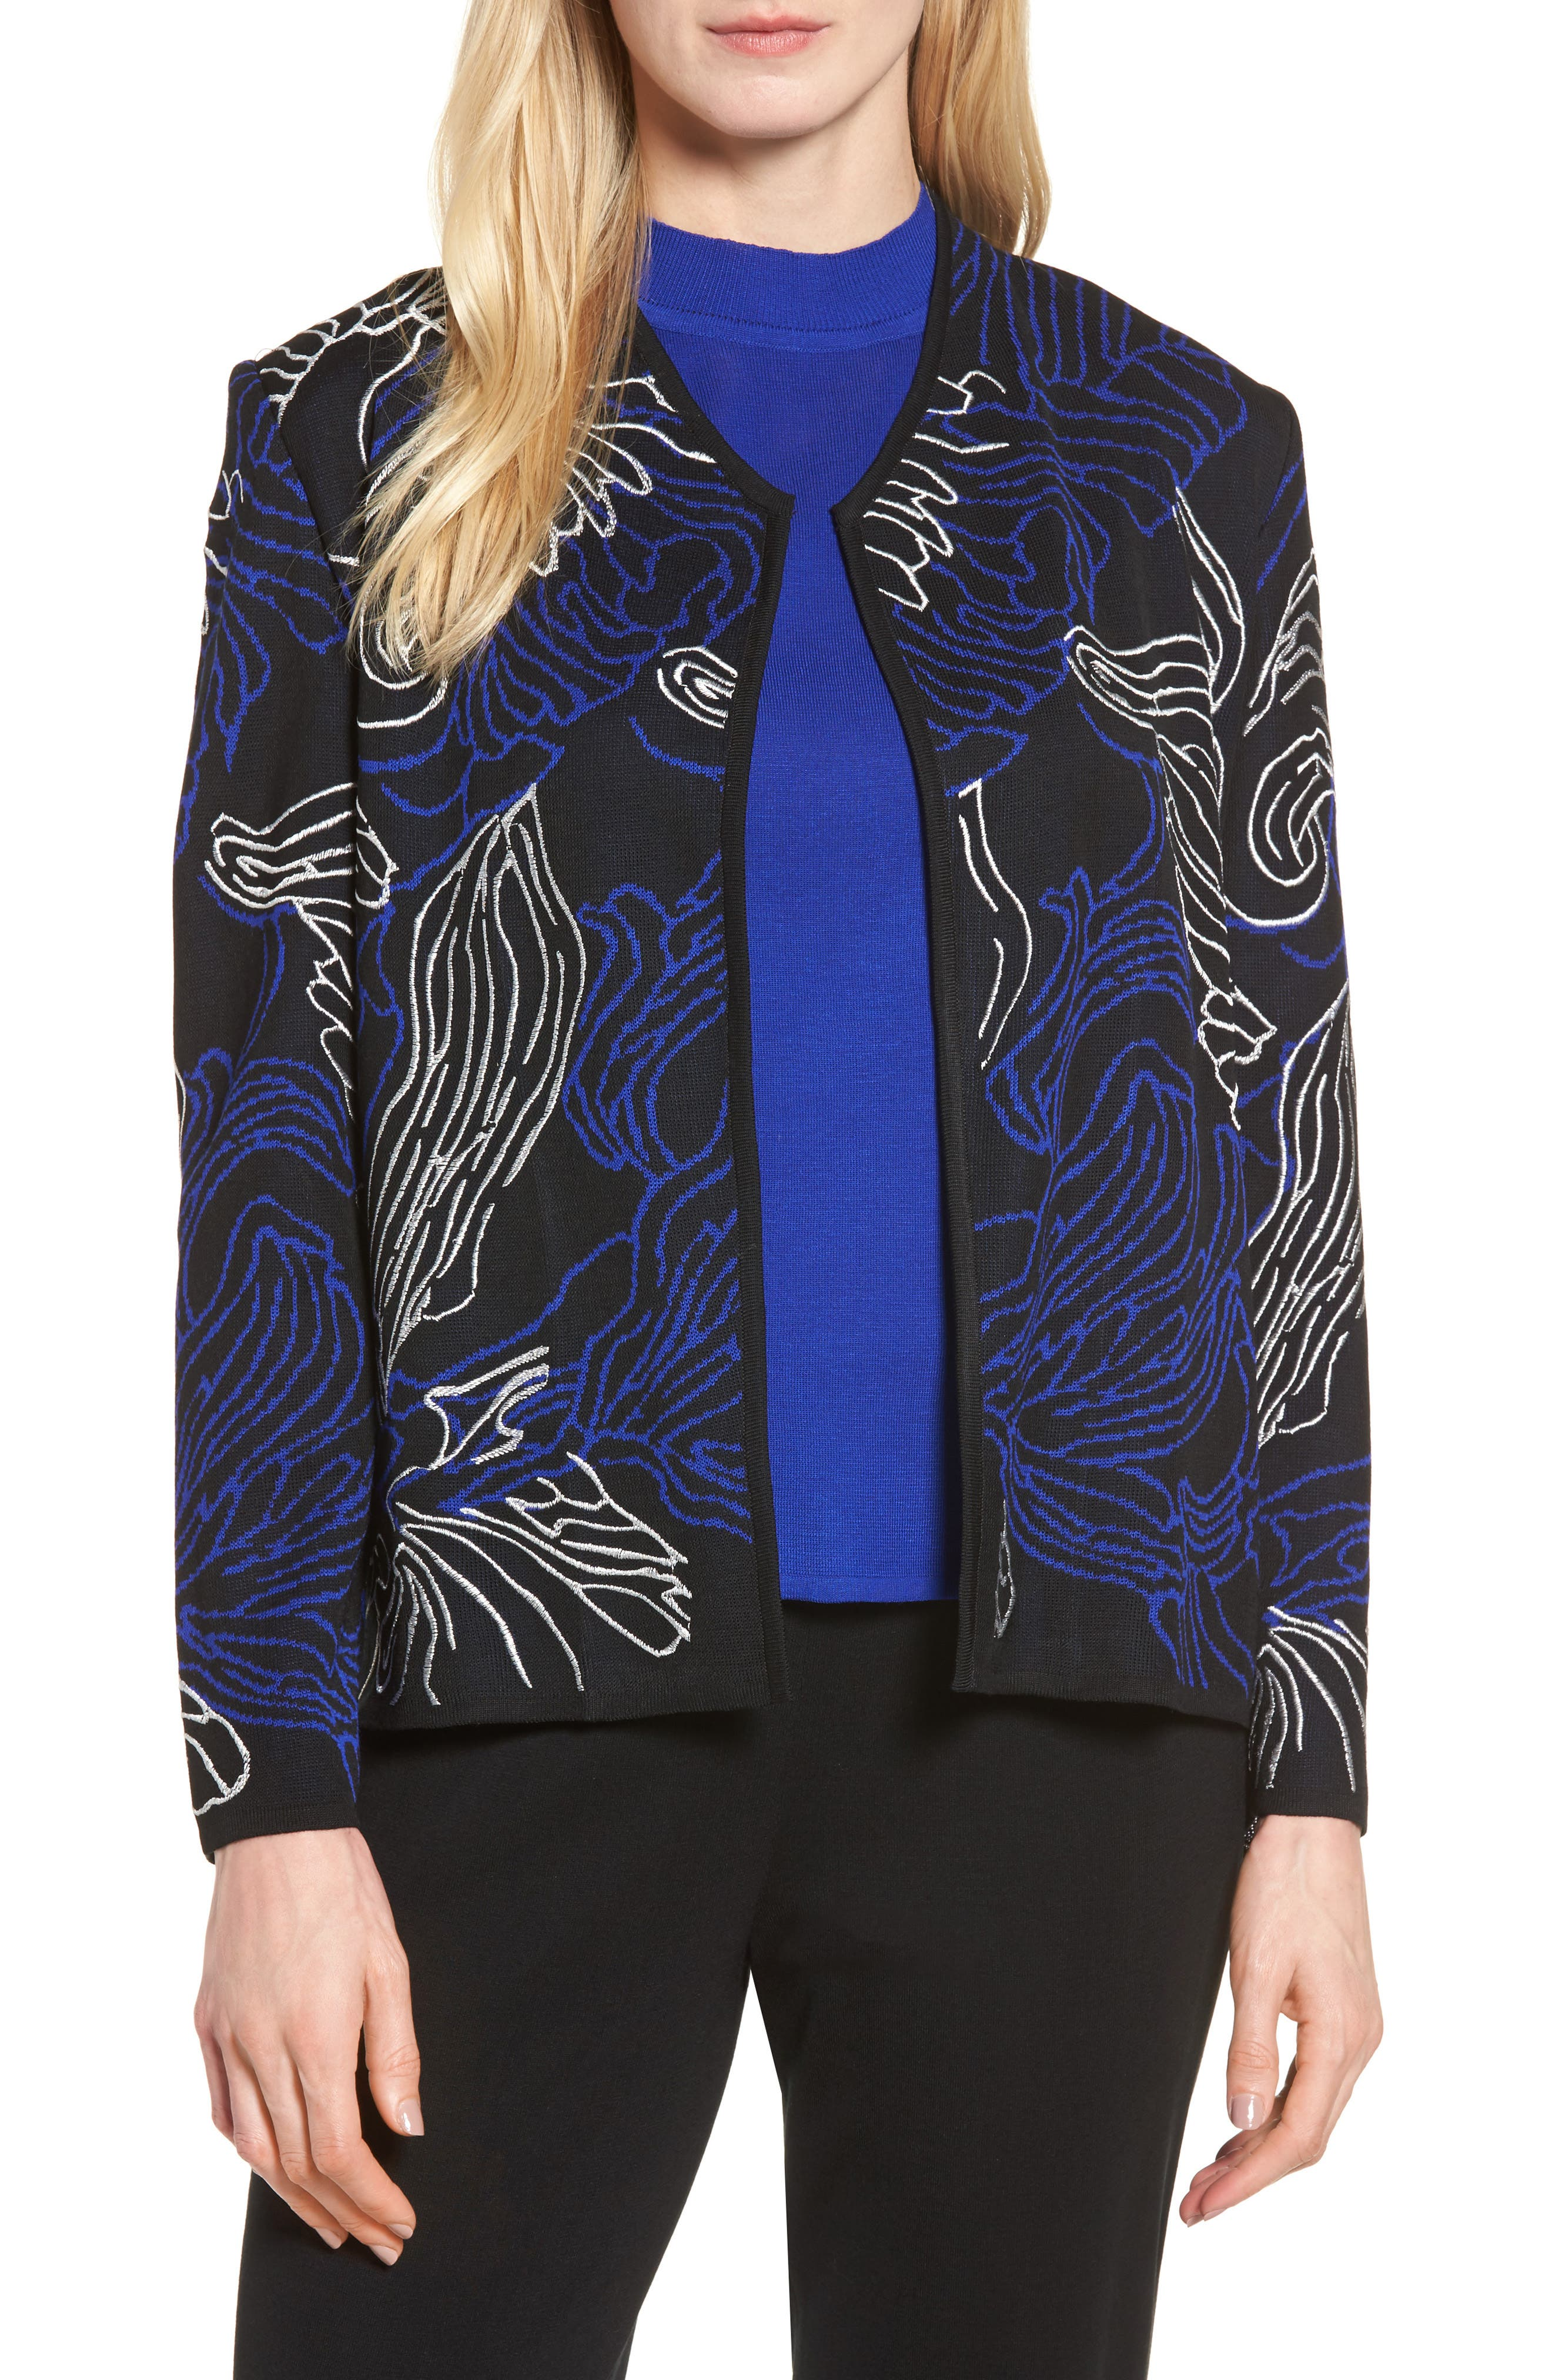 Ming Wang Embroidered Knit Jacket